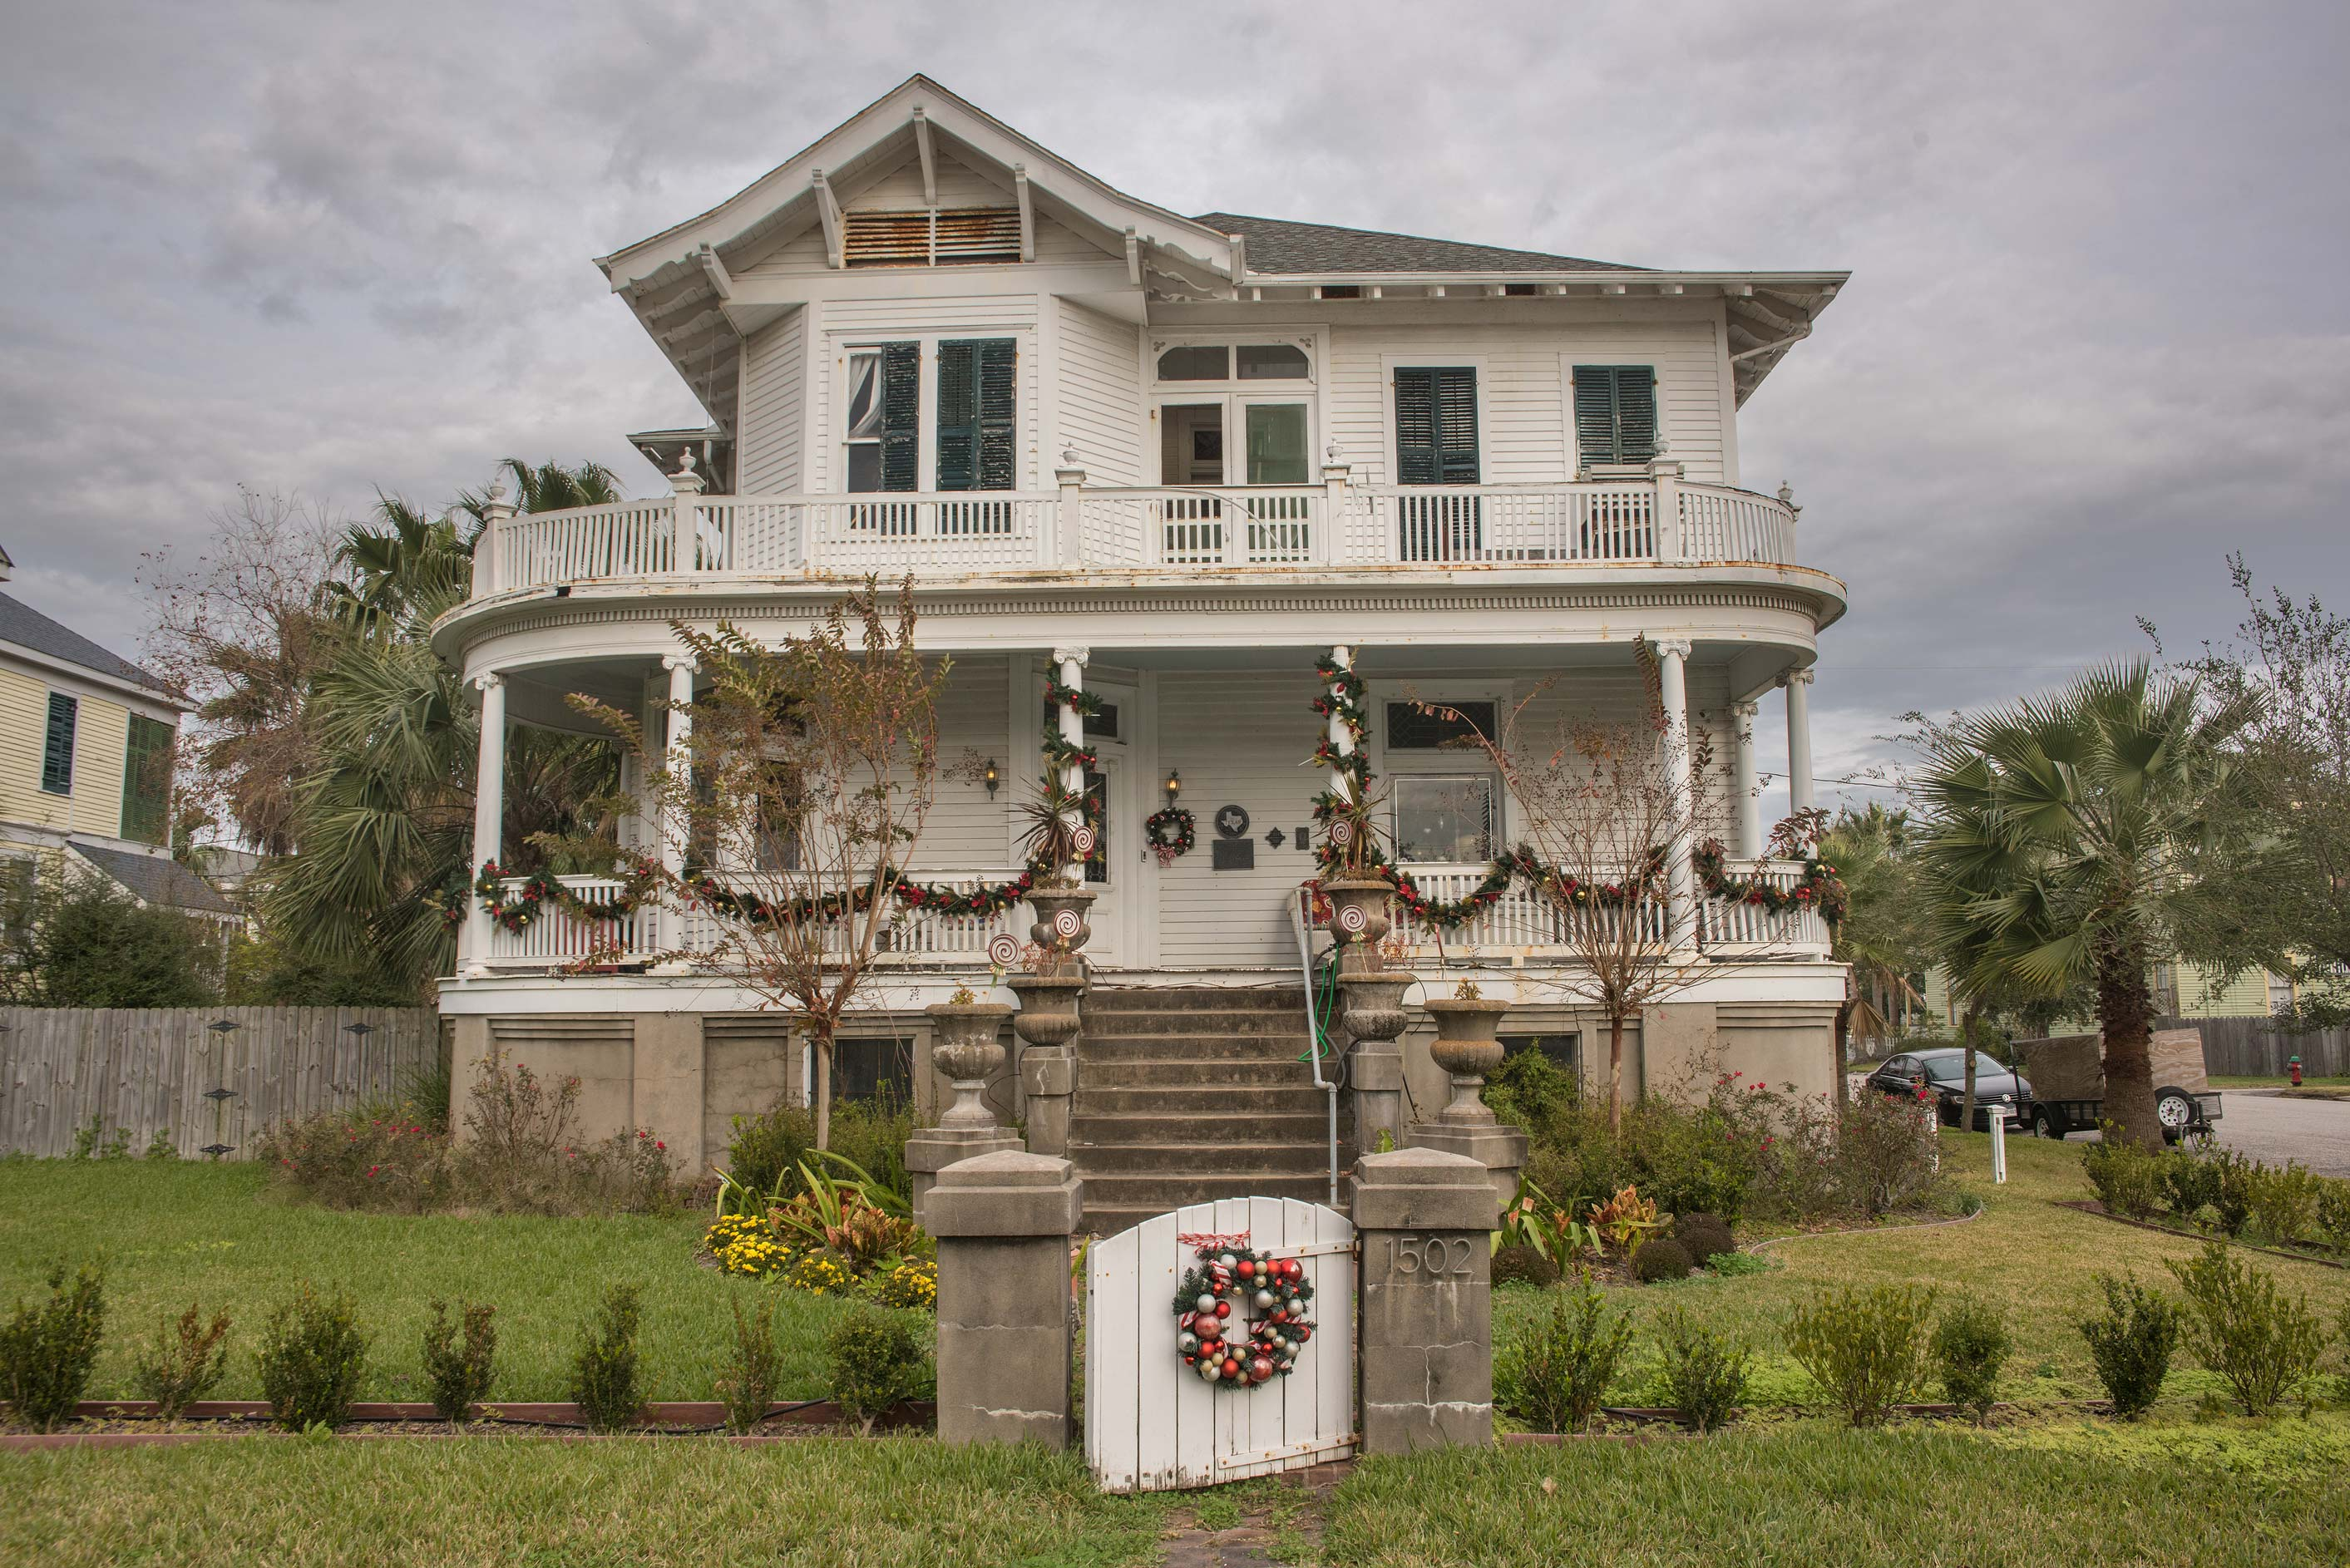 A house at 1428 Ave. H in Galveston. Texas